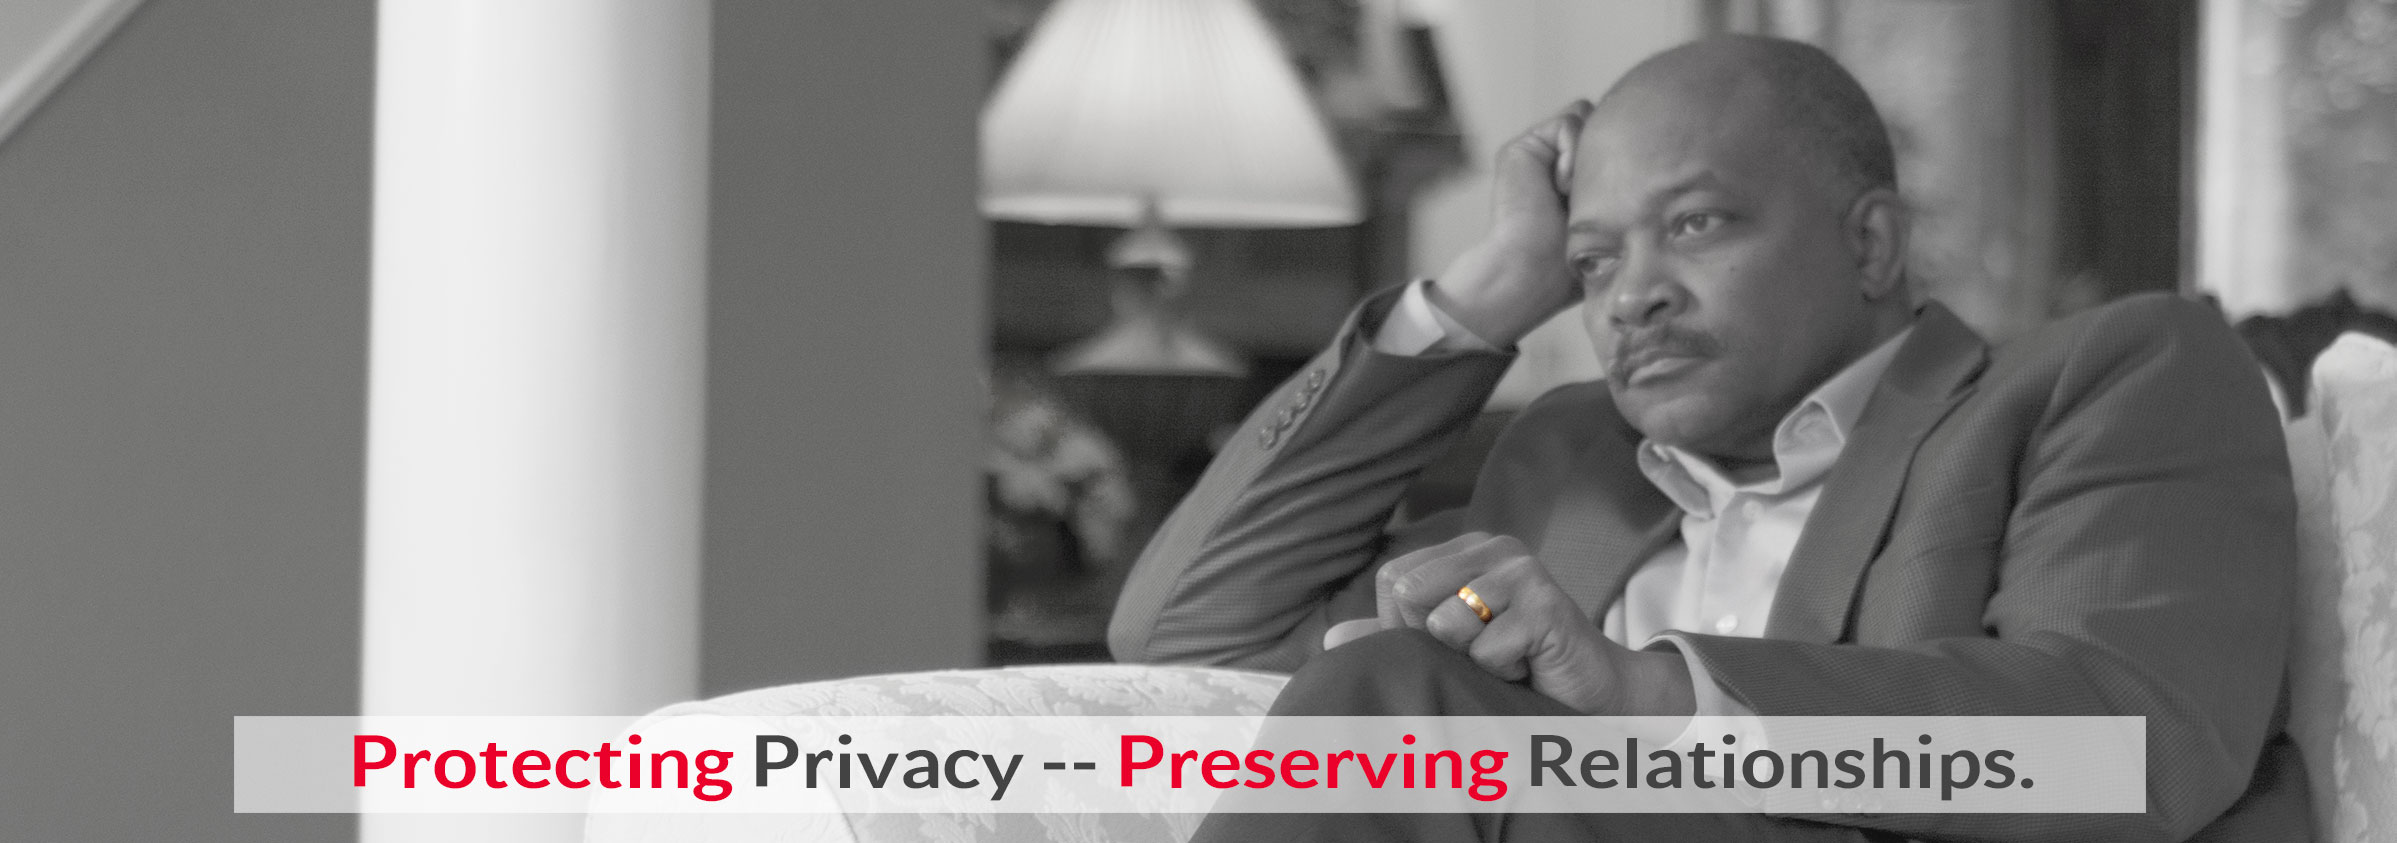 Protecting Privacy and Preserving Relationships